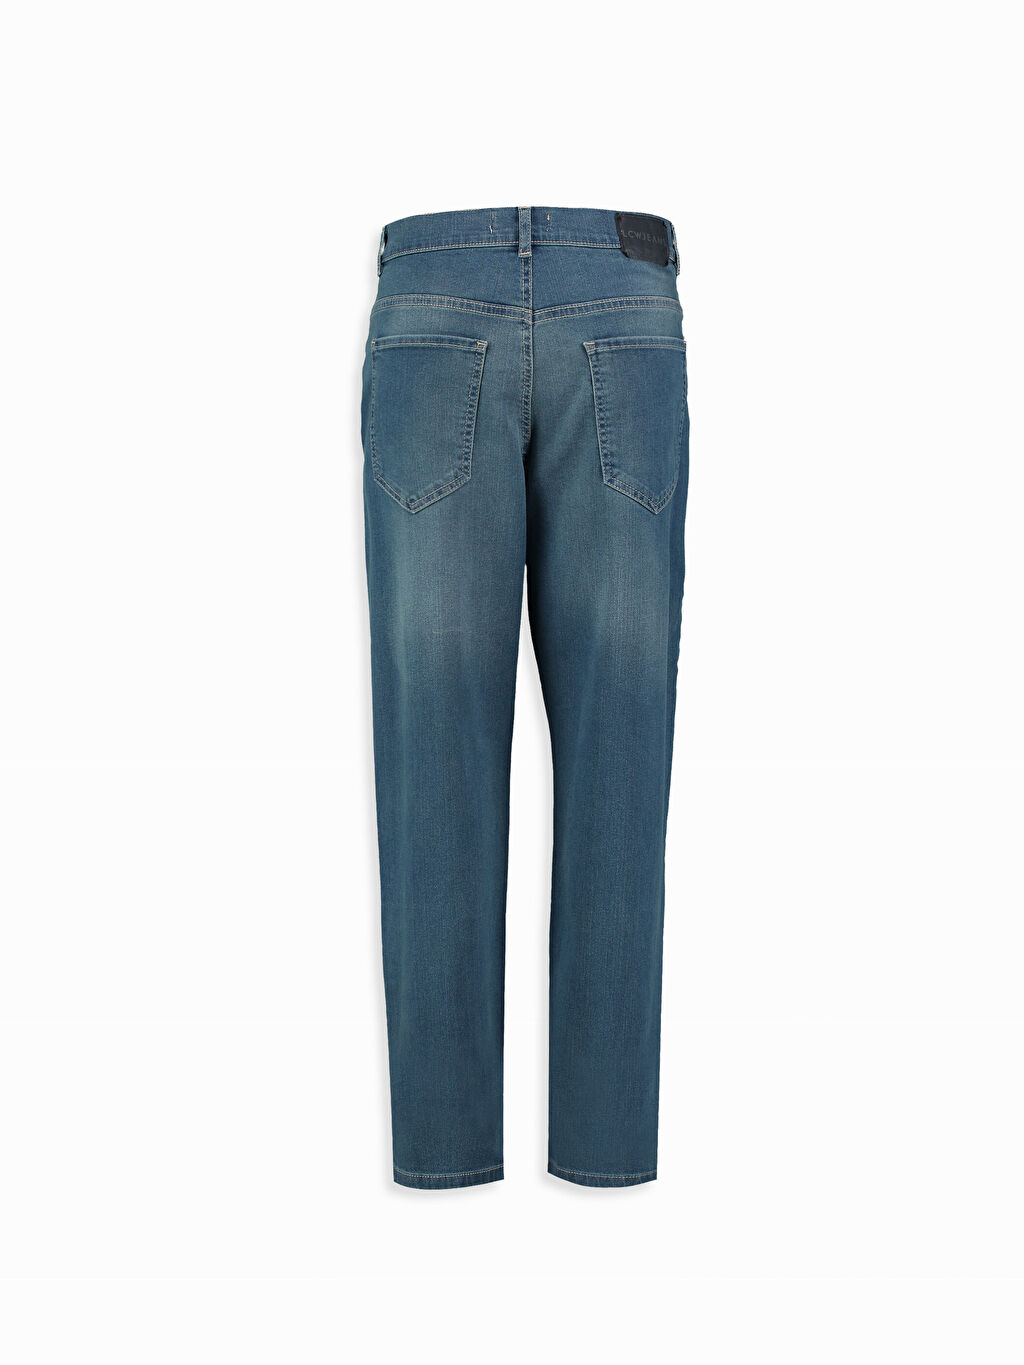 %98 Pamuk %2 Elastan Normal Bel Jean Normal İndigo Normal Bel Normal LCW Young Jean